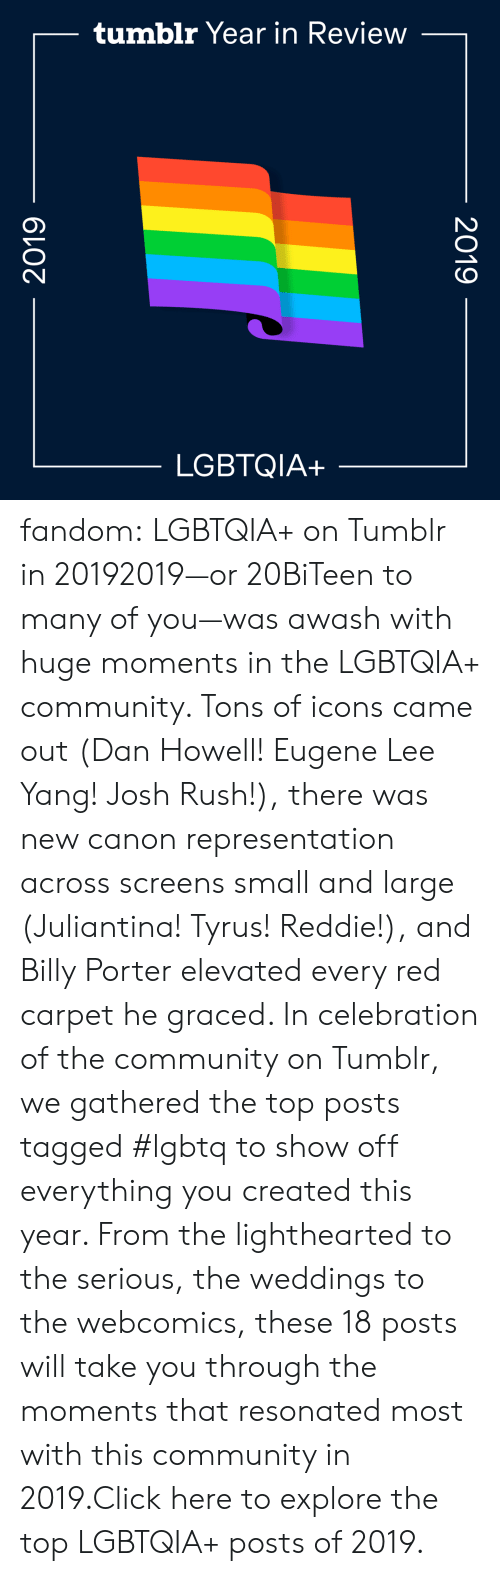 Gathered: tumblr Year in Review  LGBTQIA+  2019  2019 fandom:  LGBTQIA+ on Tumblr in 20192019—or 20BiTeen to many of you—was awash with huge moments in the LGBTQIA+ community. Tons of icons came out (Dan Howell! Eugene Lee Yang! Josh Rush!), there was new canon representation across screens small and large (Juliantina! Tyrus! Reddie!), and Billy Porter elevated every red carpet he graced. In celebration of the community on Tumblr, we gathered the top posts tagged #lgbtq to show off everything you created this year. From the lighthearted to the serious, the weddings to the webcomics, these 18 posts will take you through the moments that resonated most with this community in 2019.Click here to explore the top LGBTQIA+ posts of 2019.